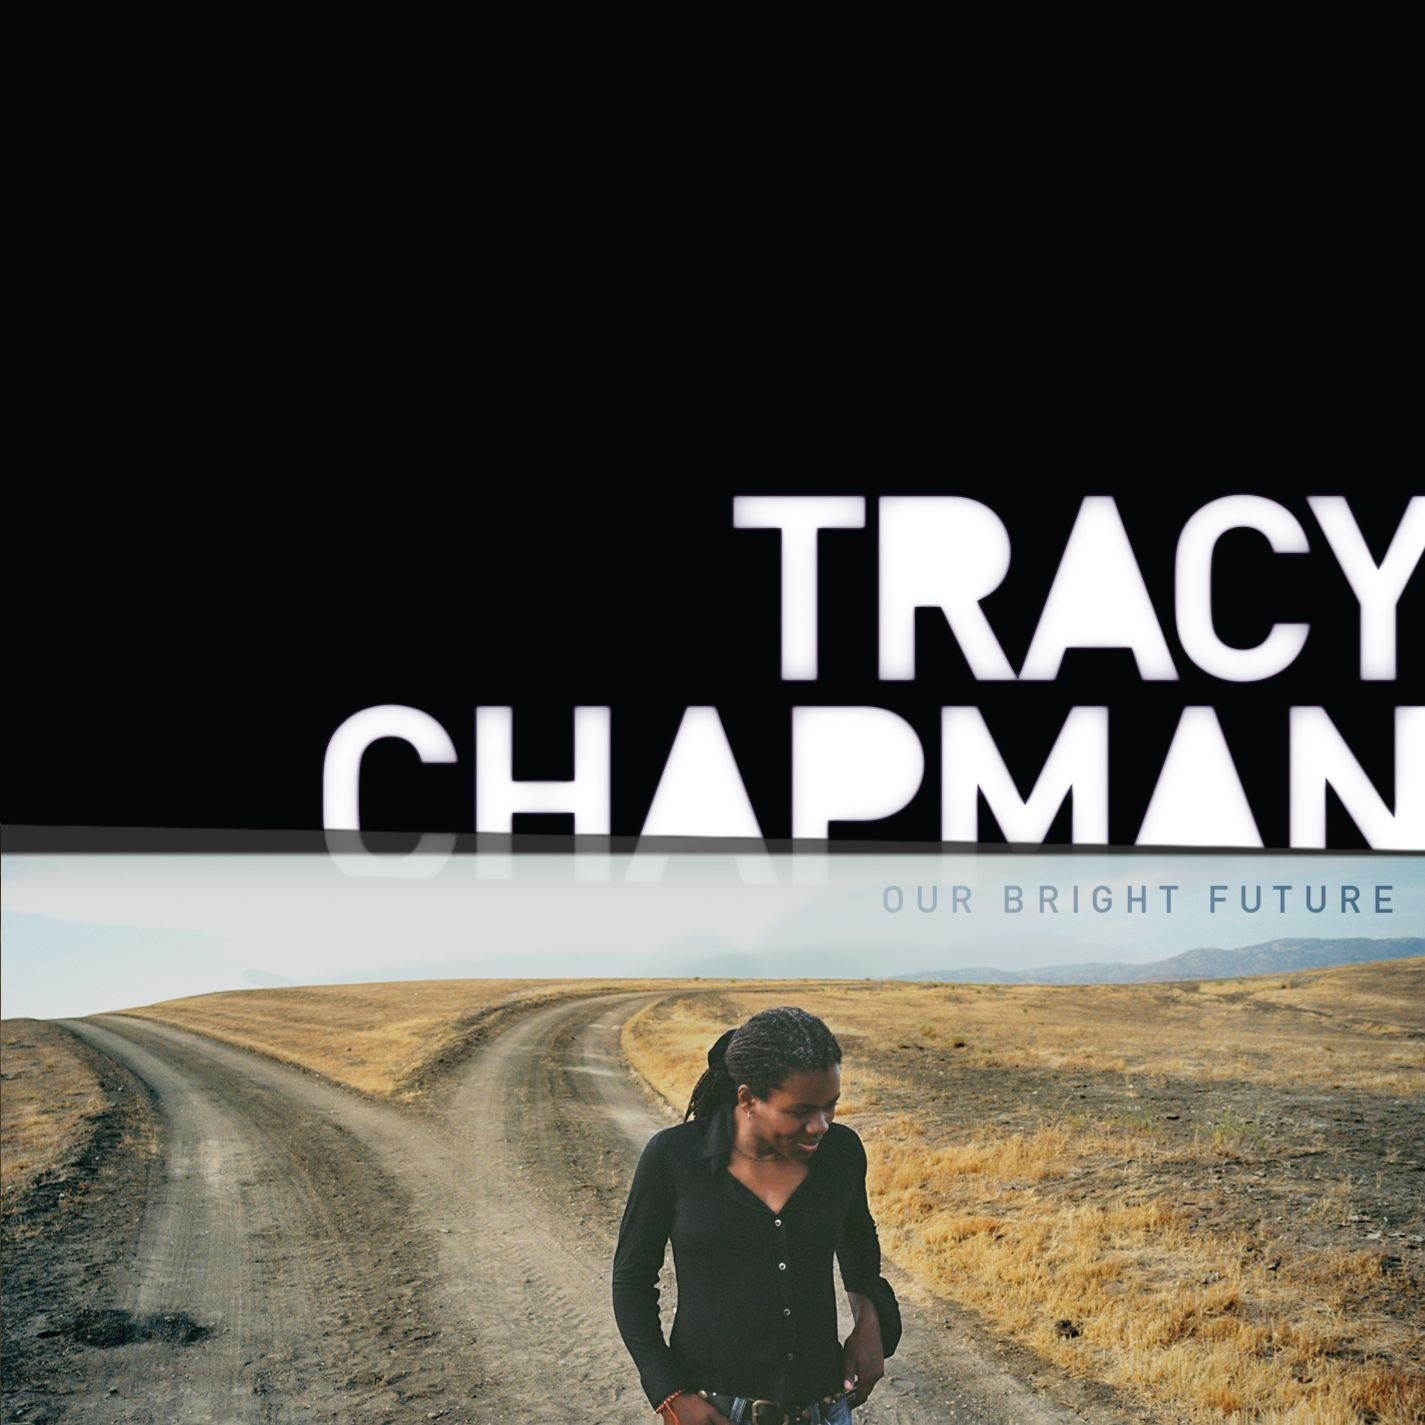 Tracy Chapman, Our Bright Future